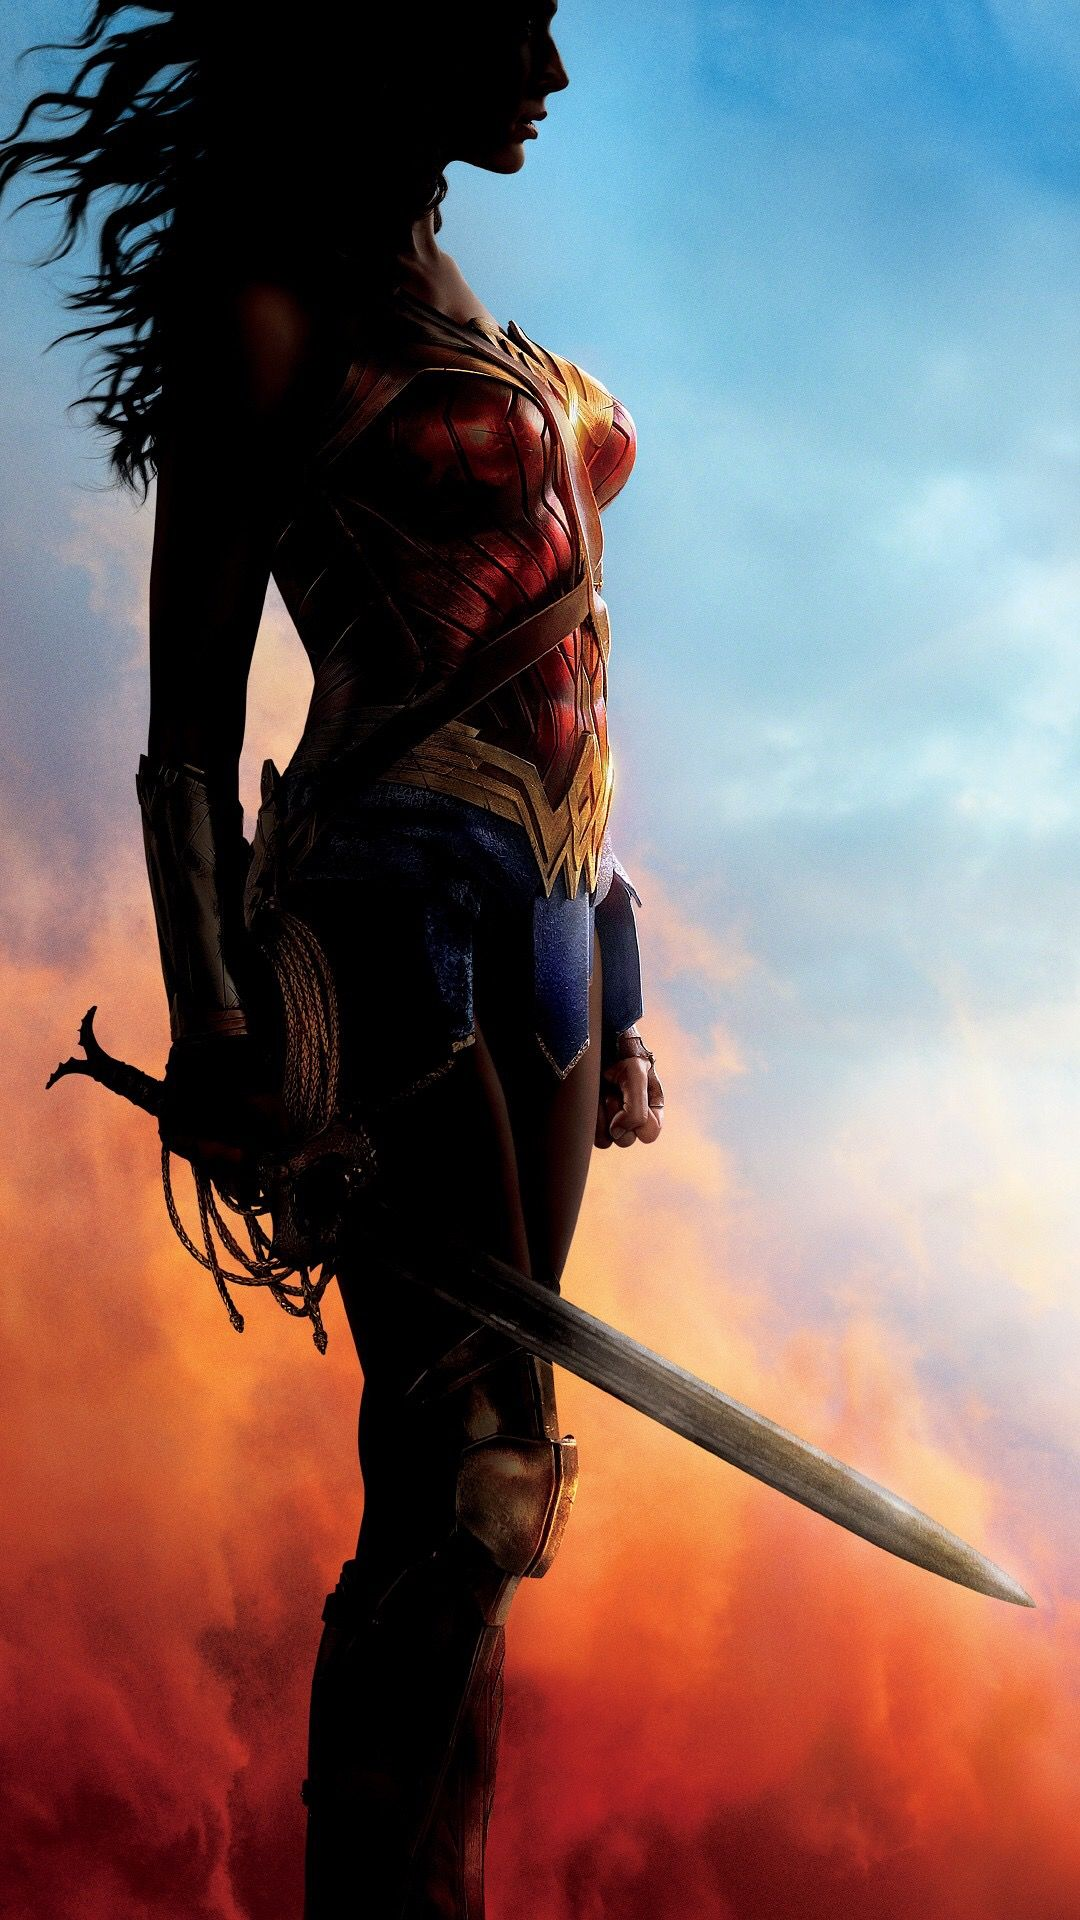 Wonder Woman Wonder Woman Movie Gal Gadot Wonder Woman First Wonder Woman